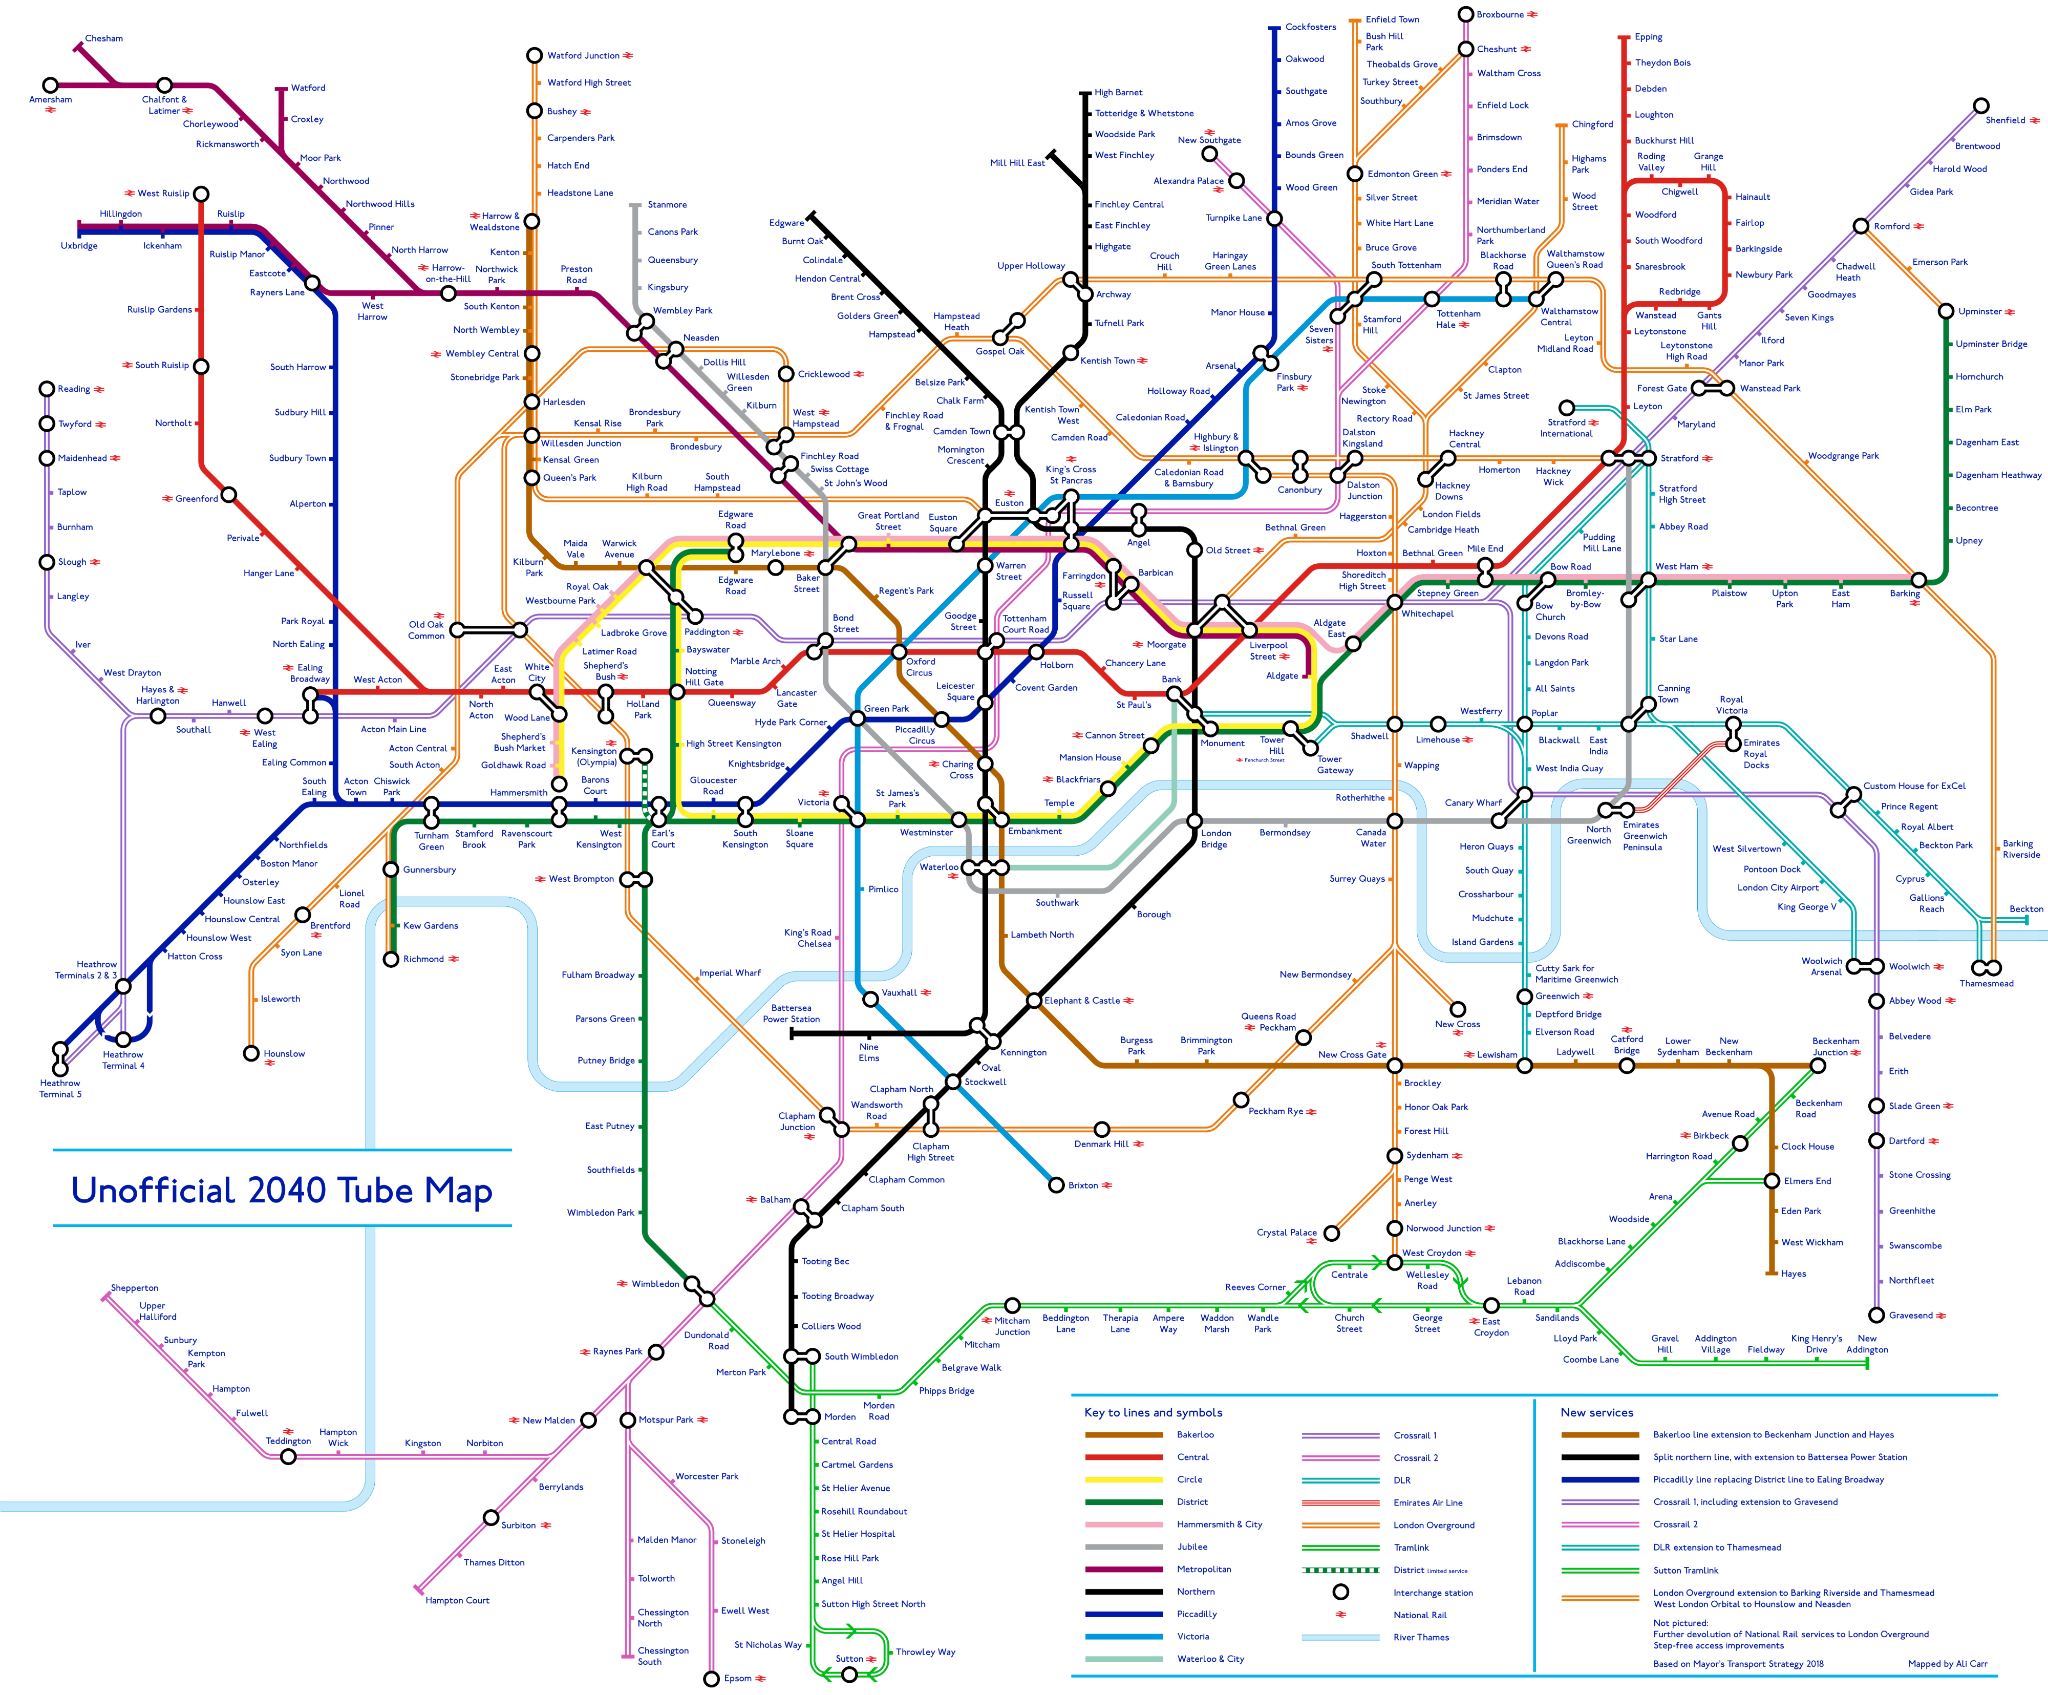 Tube Map Of London.Here S What The London Tube Map Could Look Like In 2040